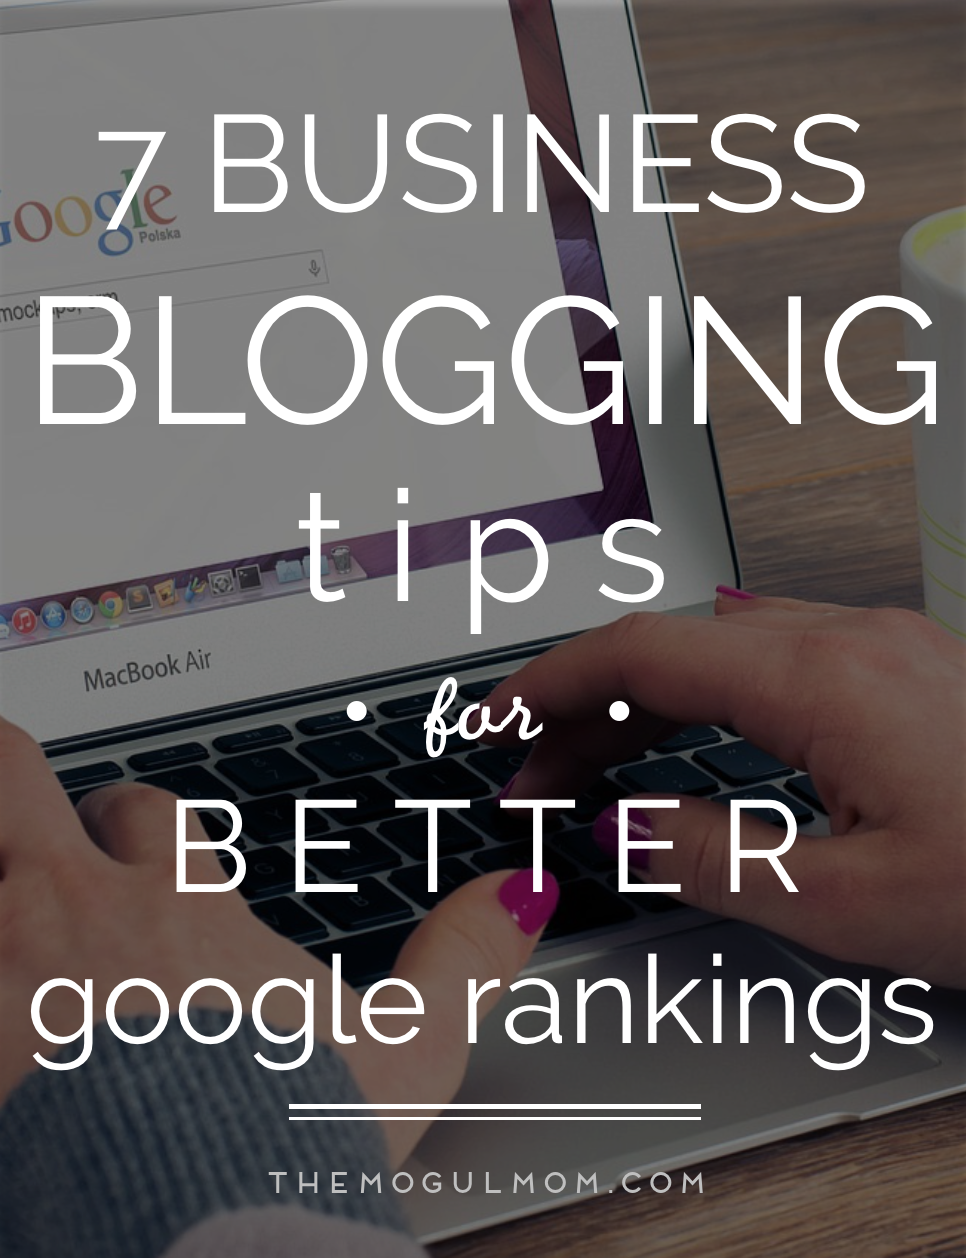 7 Business Blogging Tips For Better Google Rankings